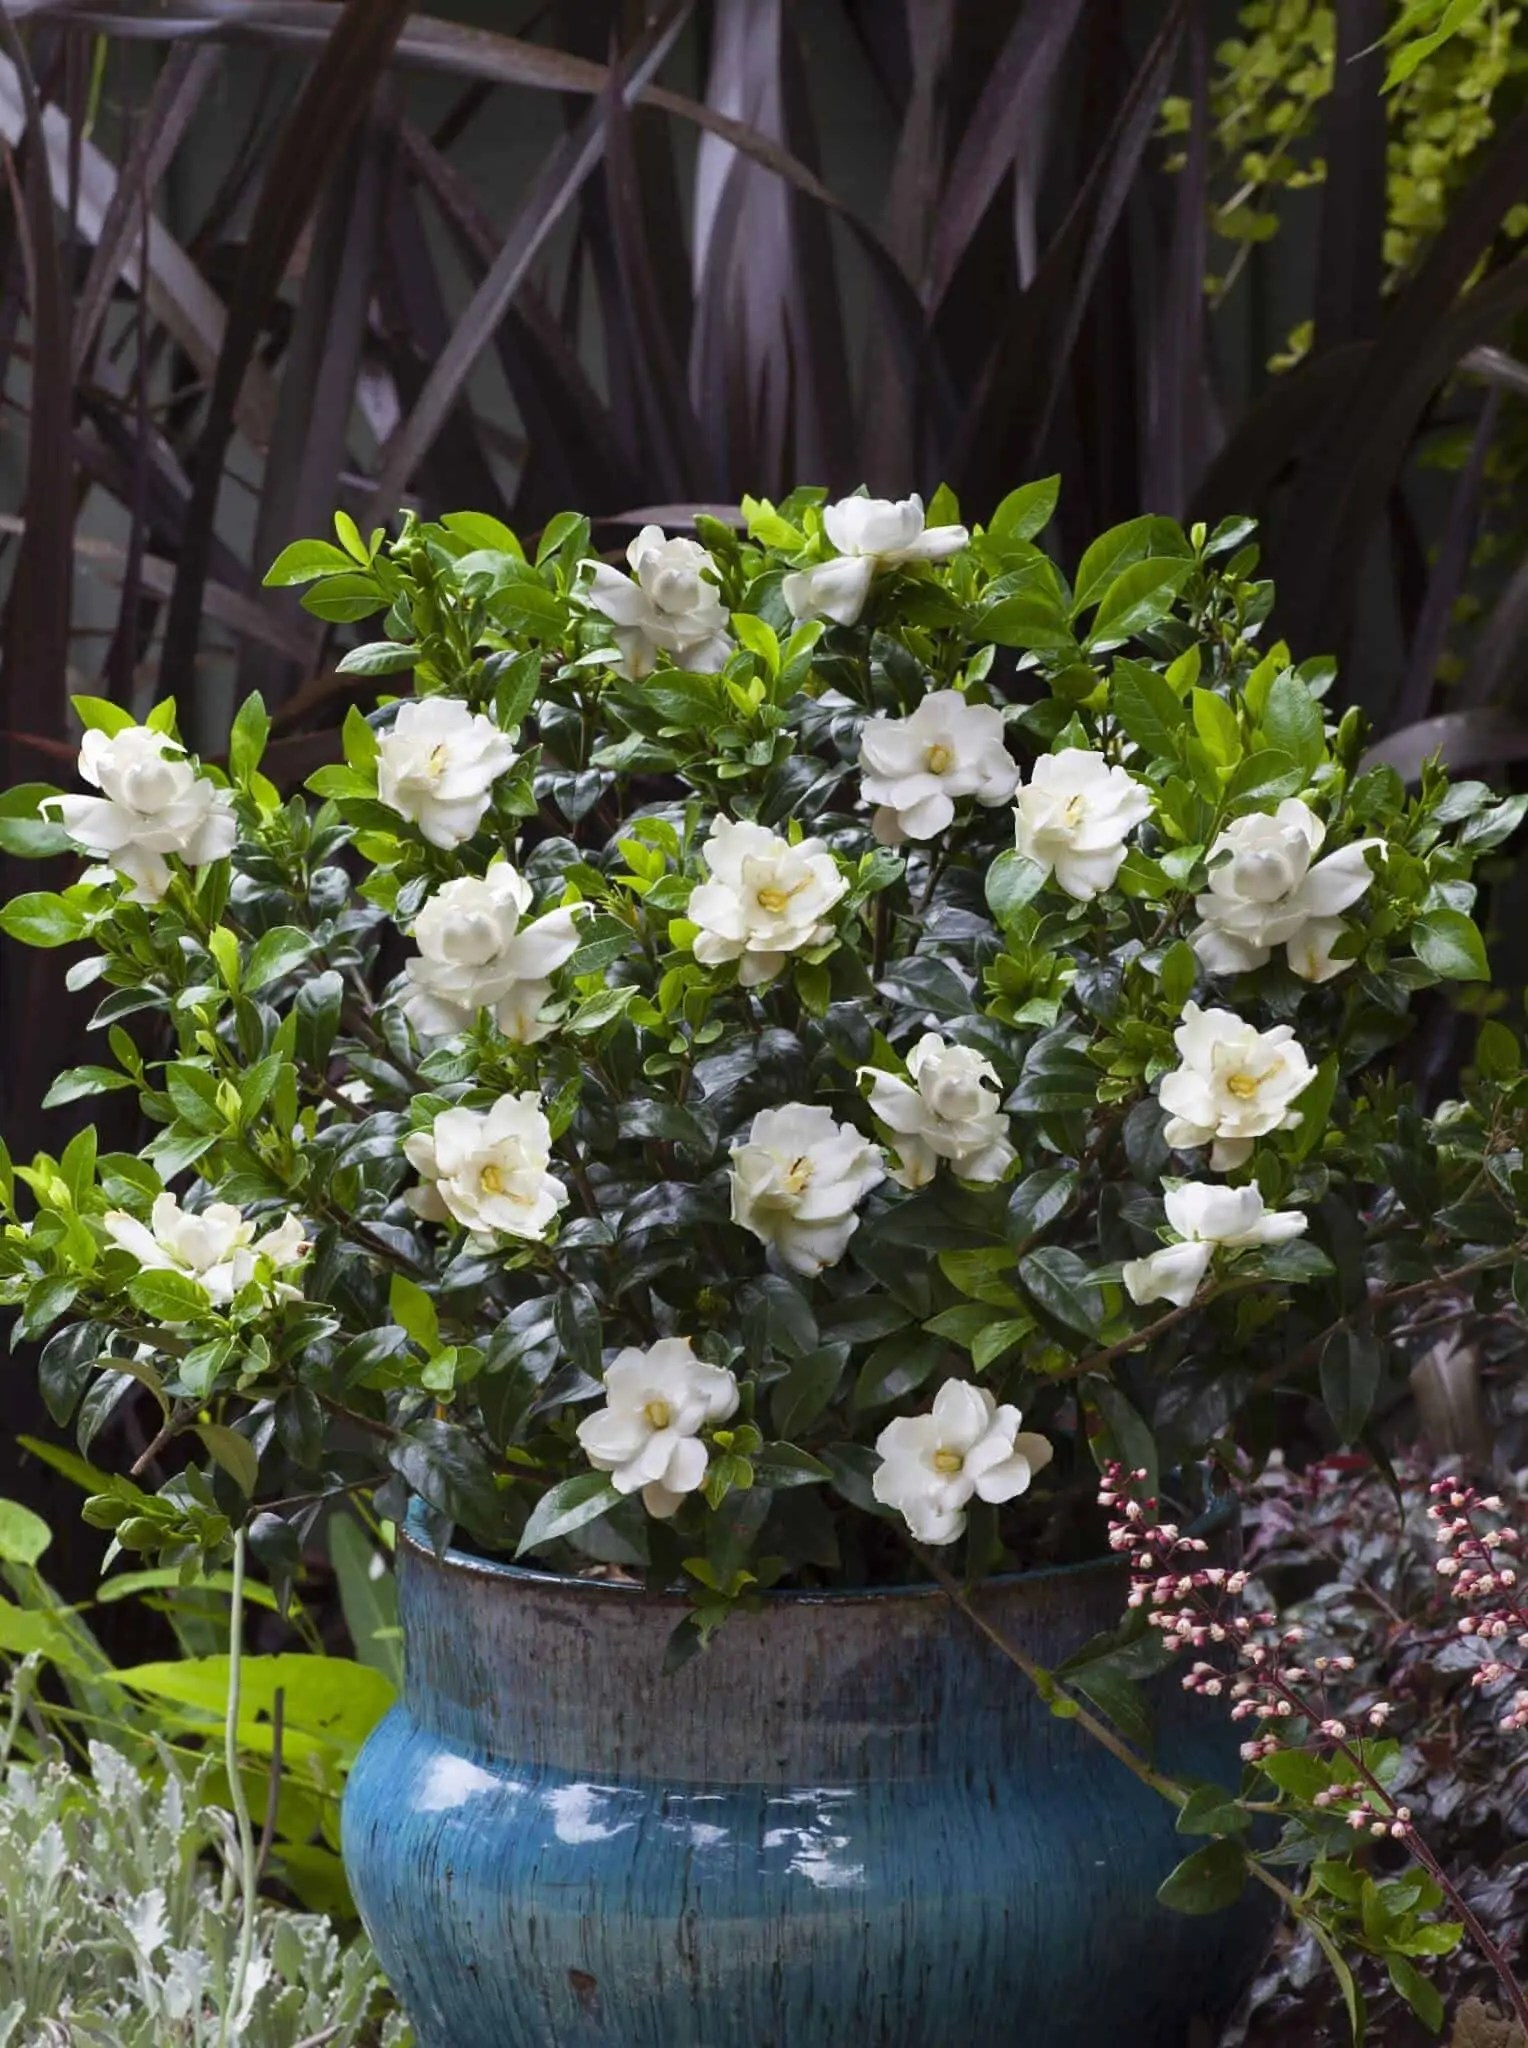 Dazzling Jubilation Gardenia Landscape Jubilation Gardenia Shipped To You Shop August Beauty Gardenia Hedge August Beauty Gardenia Yellow Leaves houzz-03 August Beauty Gardenia